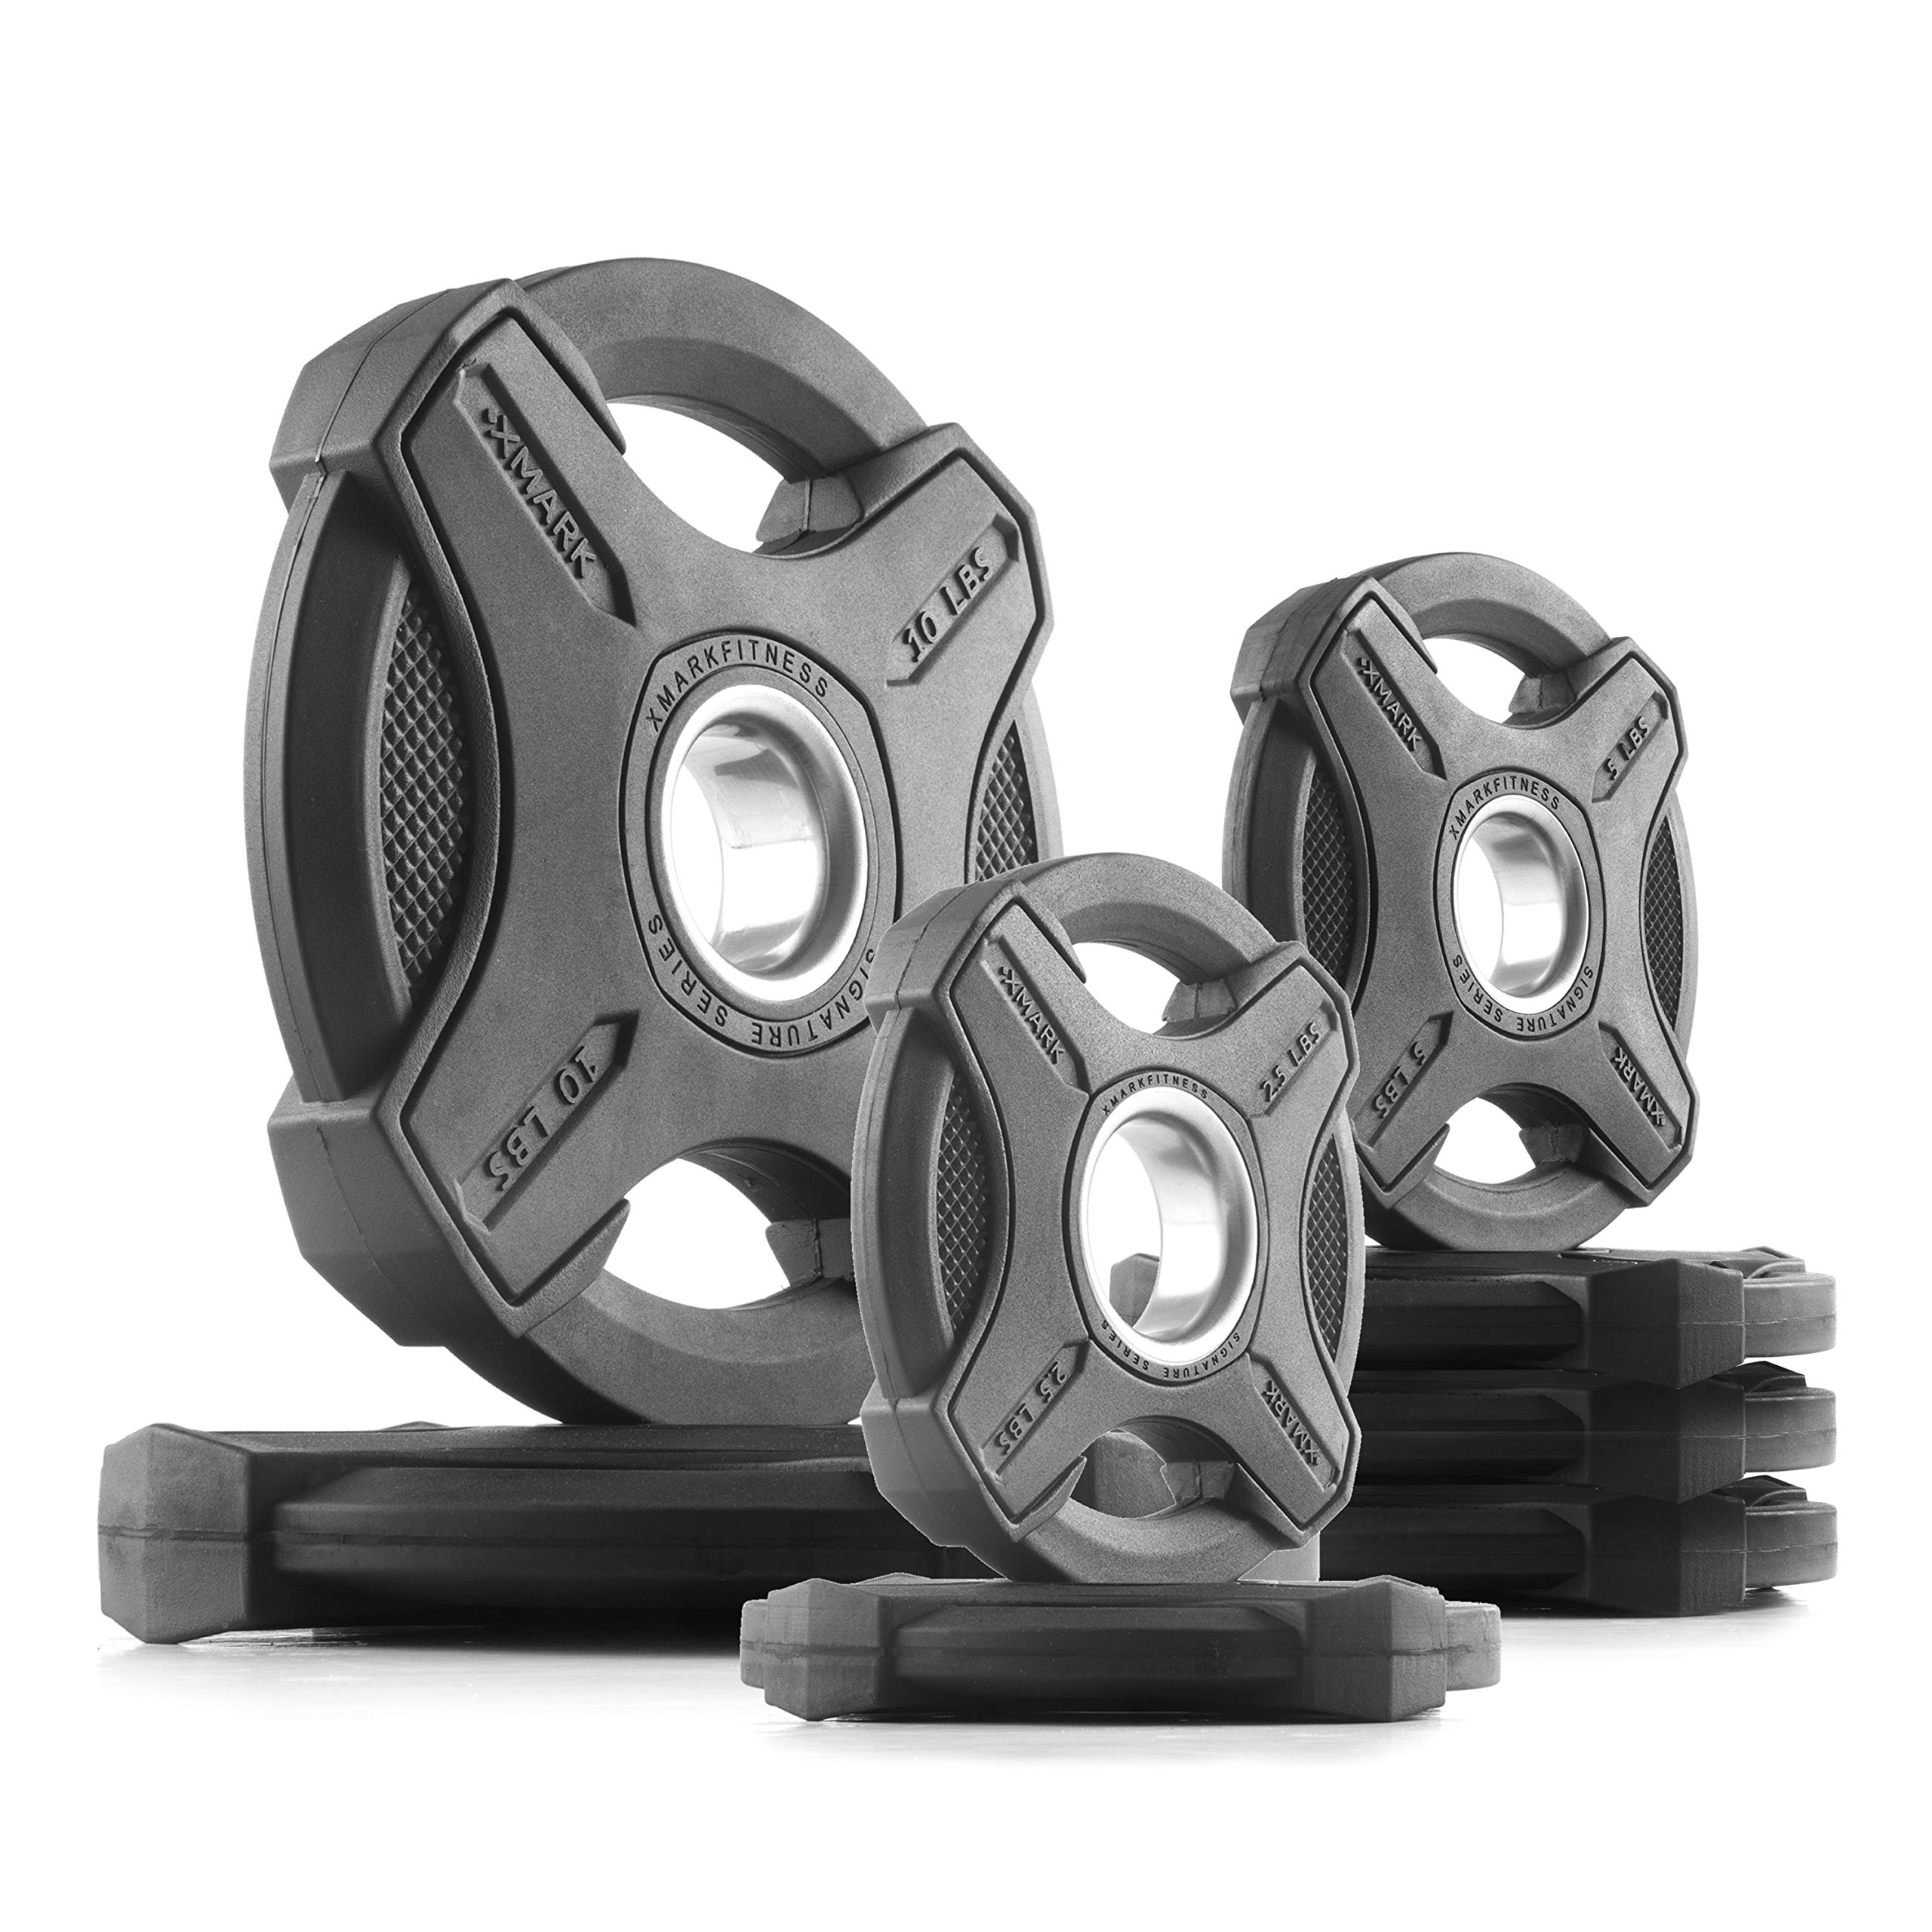 XMark 45 lb Set Signature Plates, One-Year Warranty, Olympic Weight Plates, Cutting-Edge Design